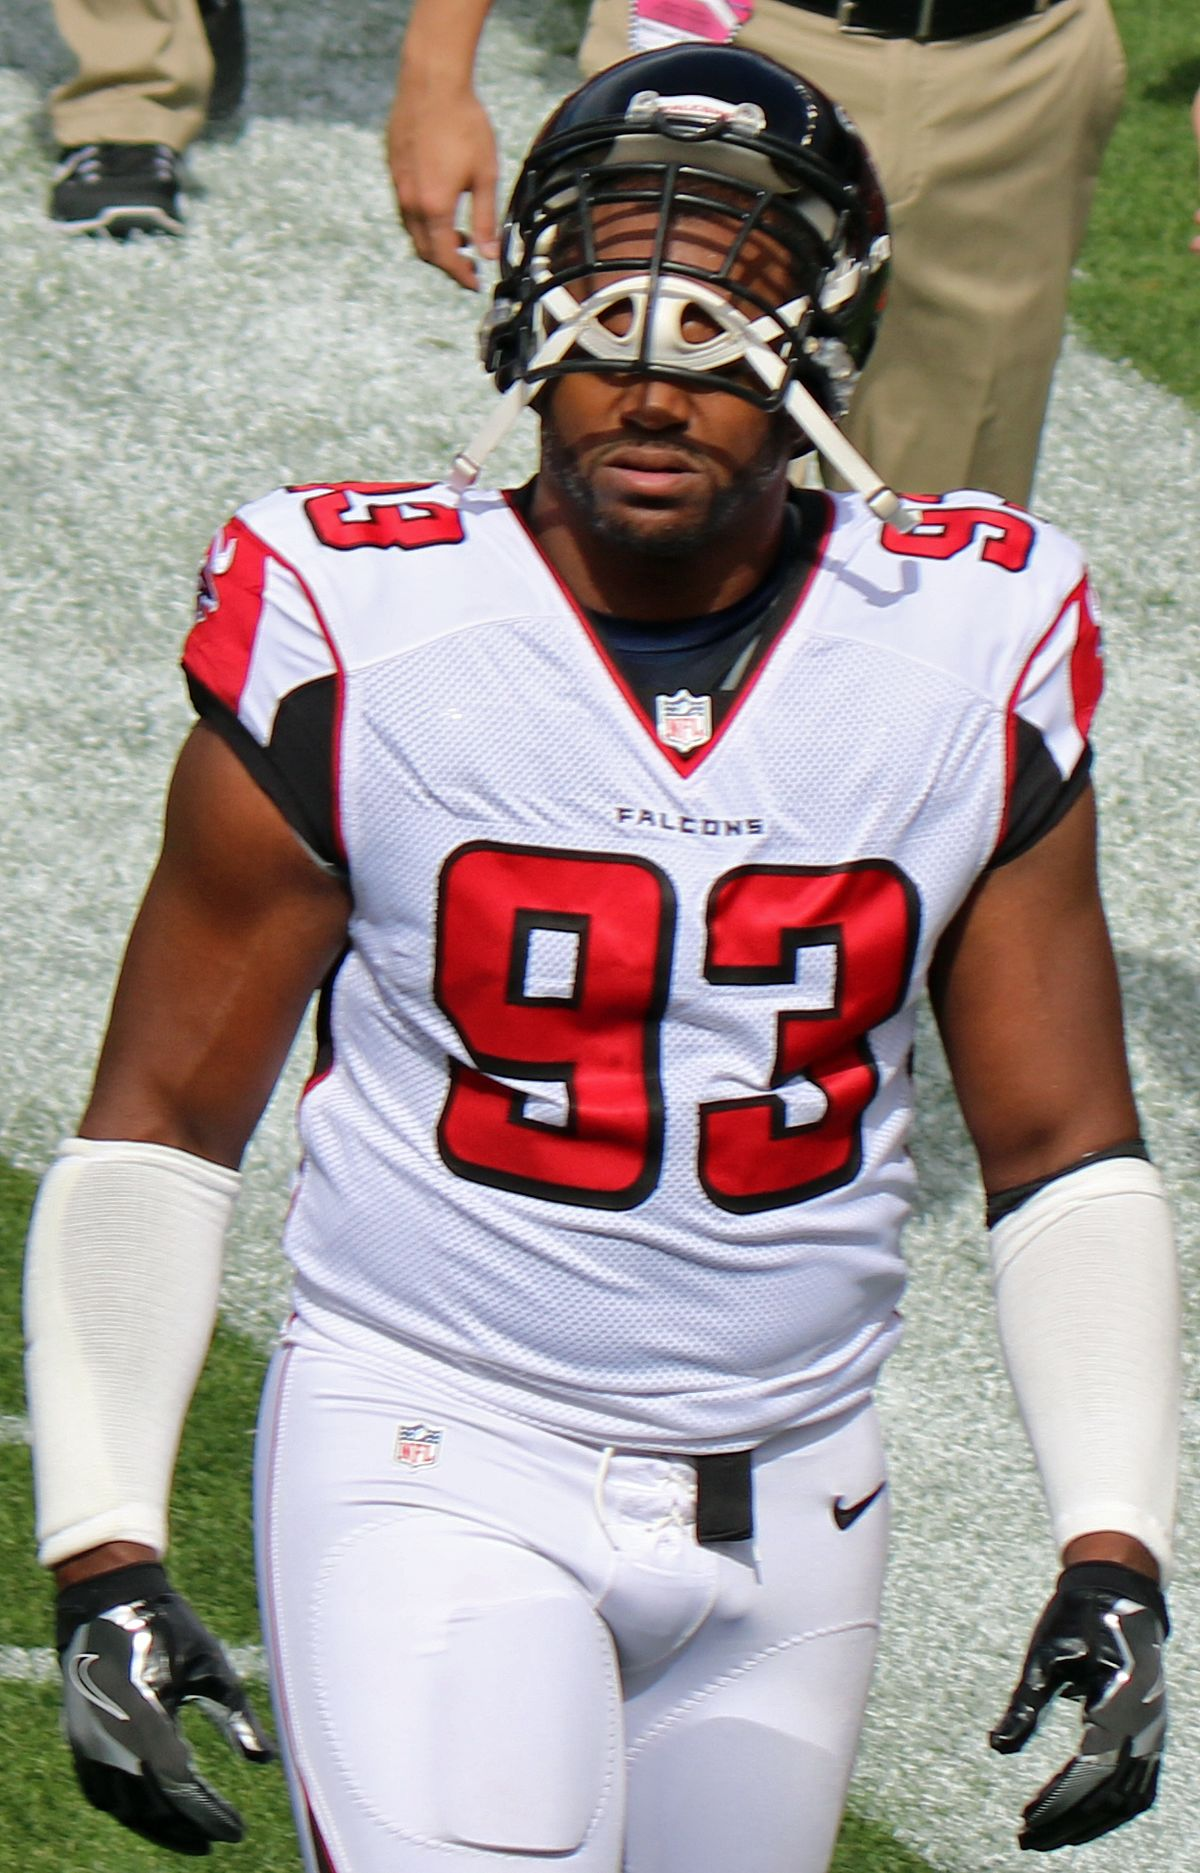 Dwight Freeney Wikipedia